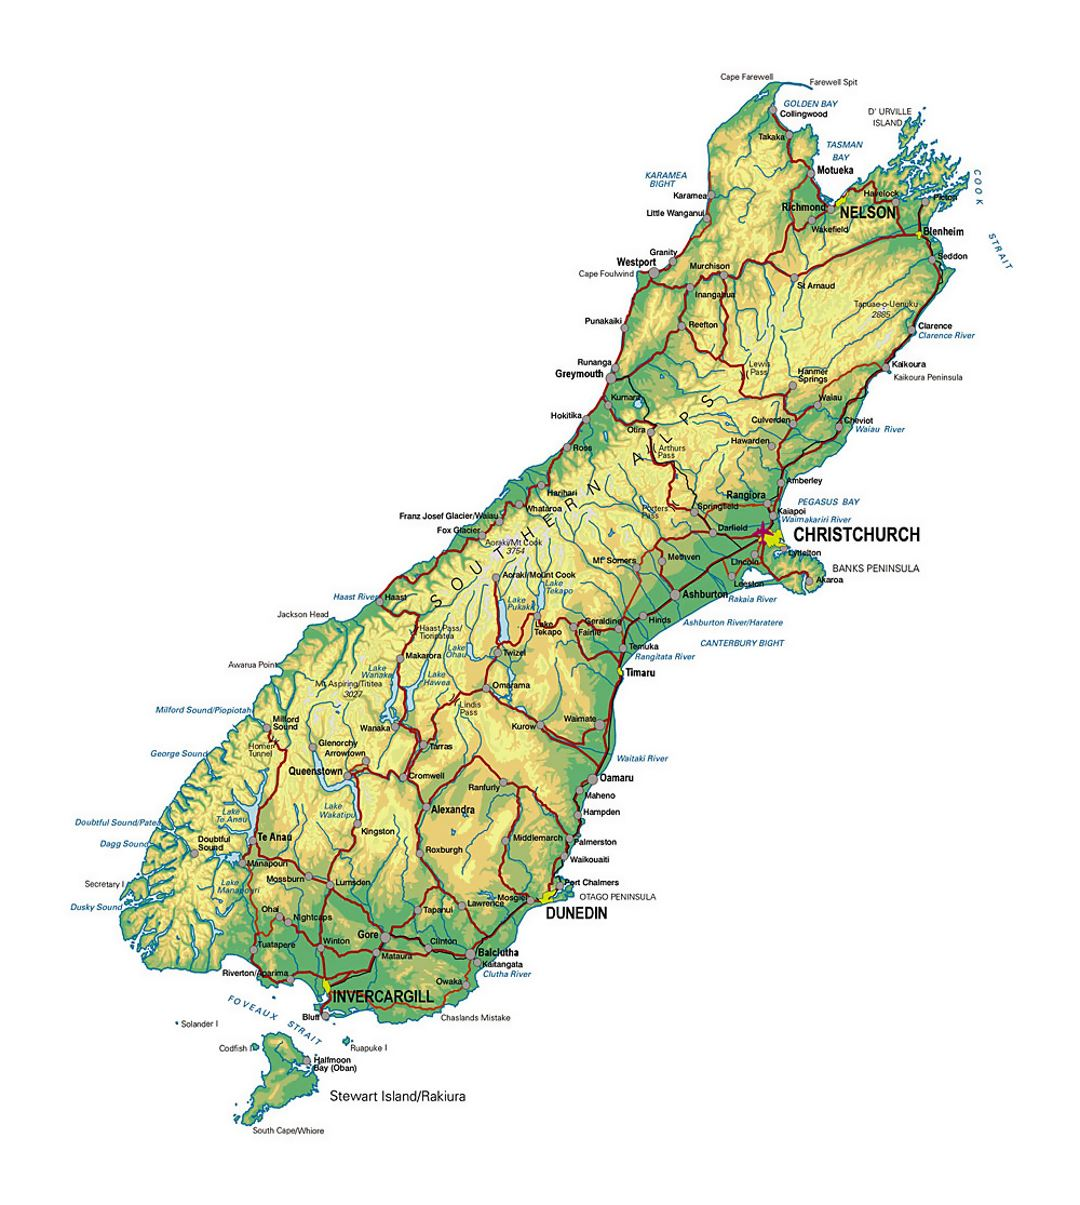 Printable Map Of South Island New Zealand.Detailed Map Of South Island New Zealand With Other Marks New